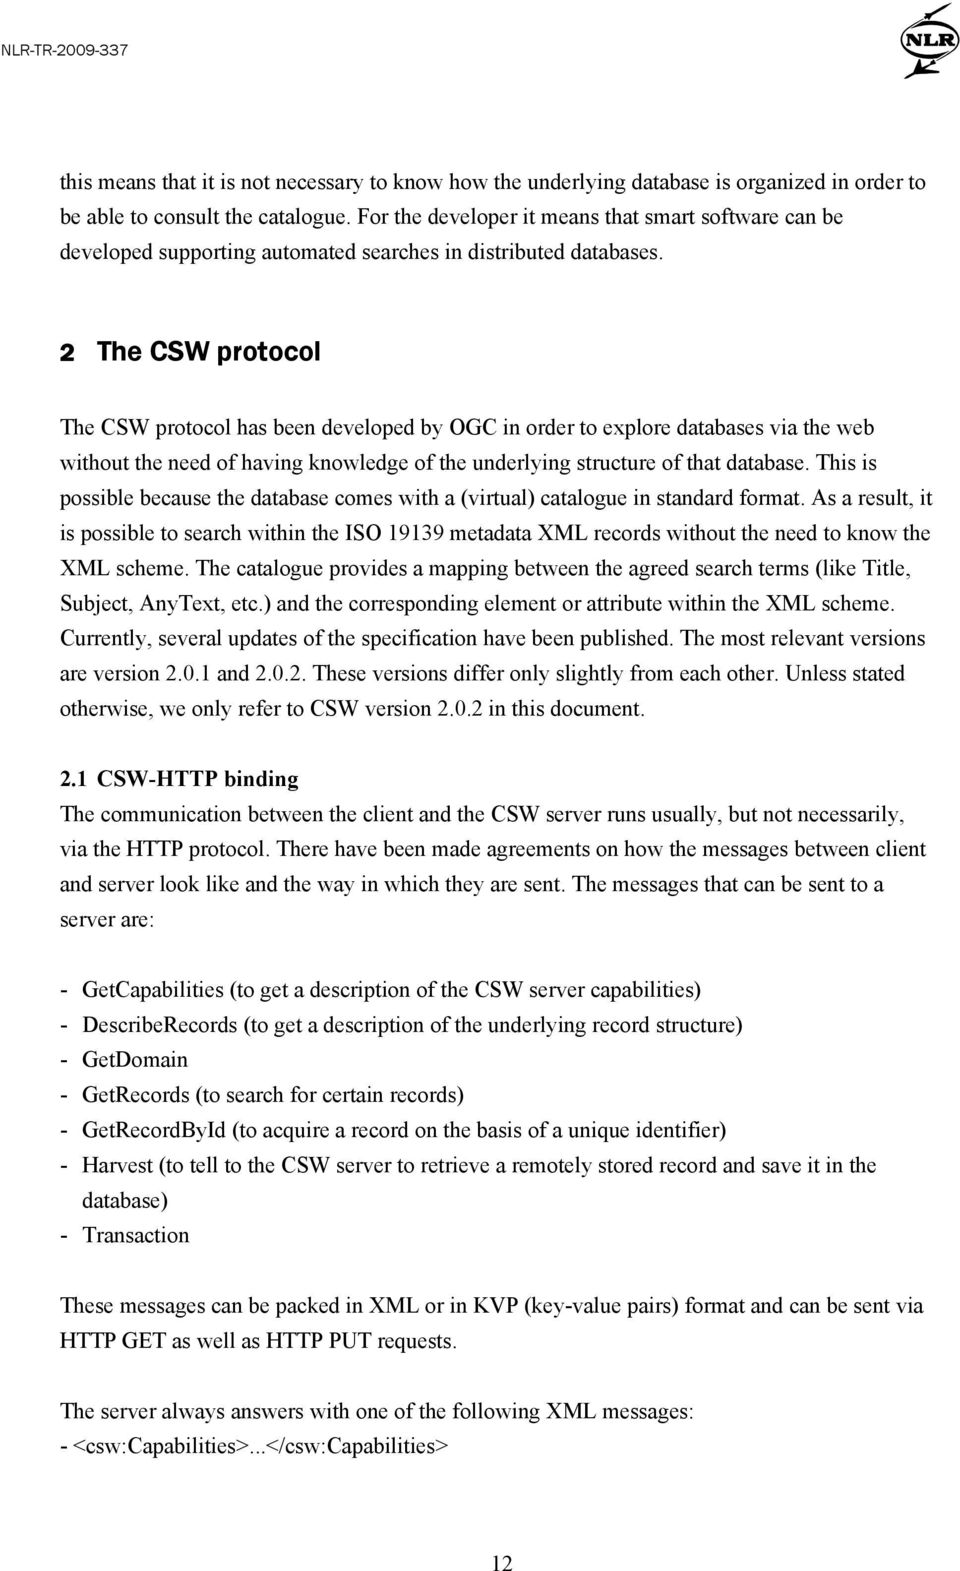 2 The CSW protocol The CSW protocol has been developed by OGC in order to explore databases via the web without the need of having knowledge of the underlying structure of that database.